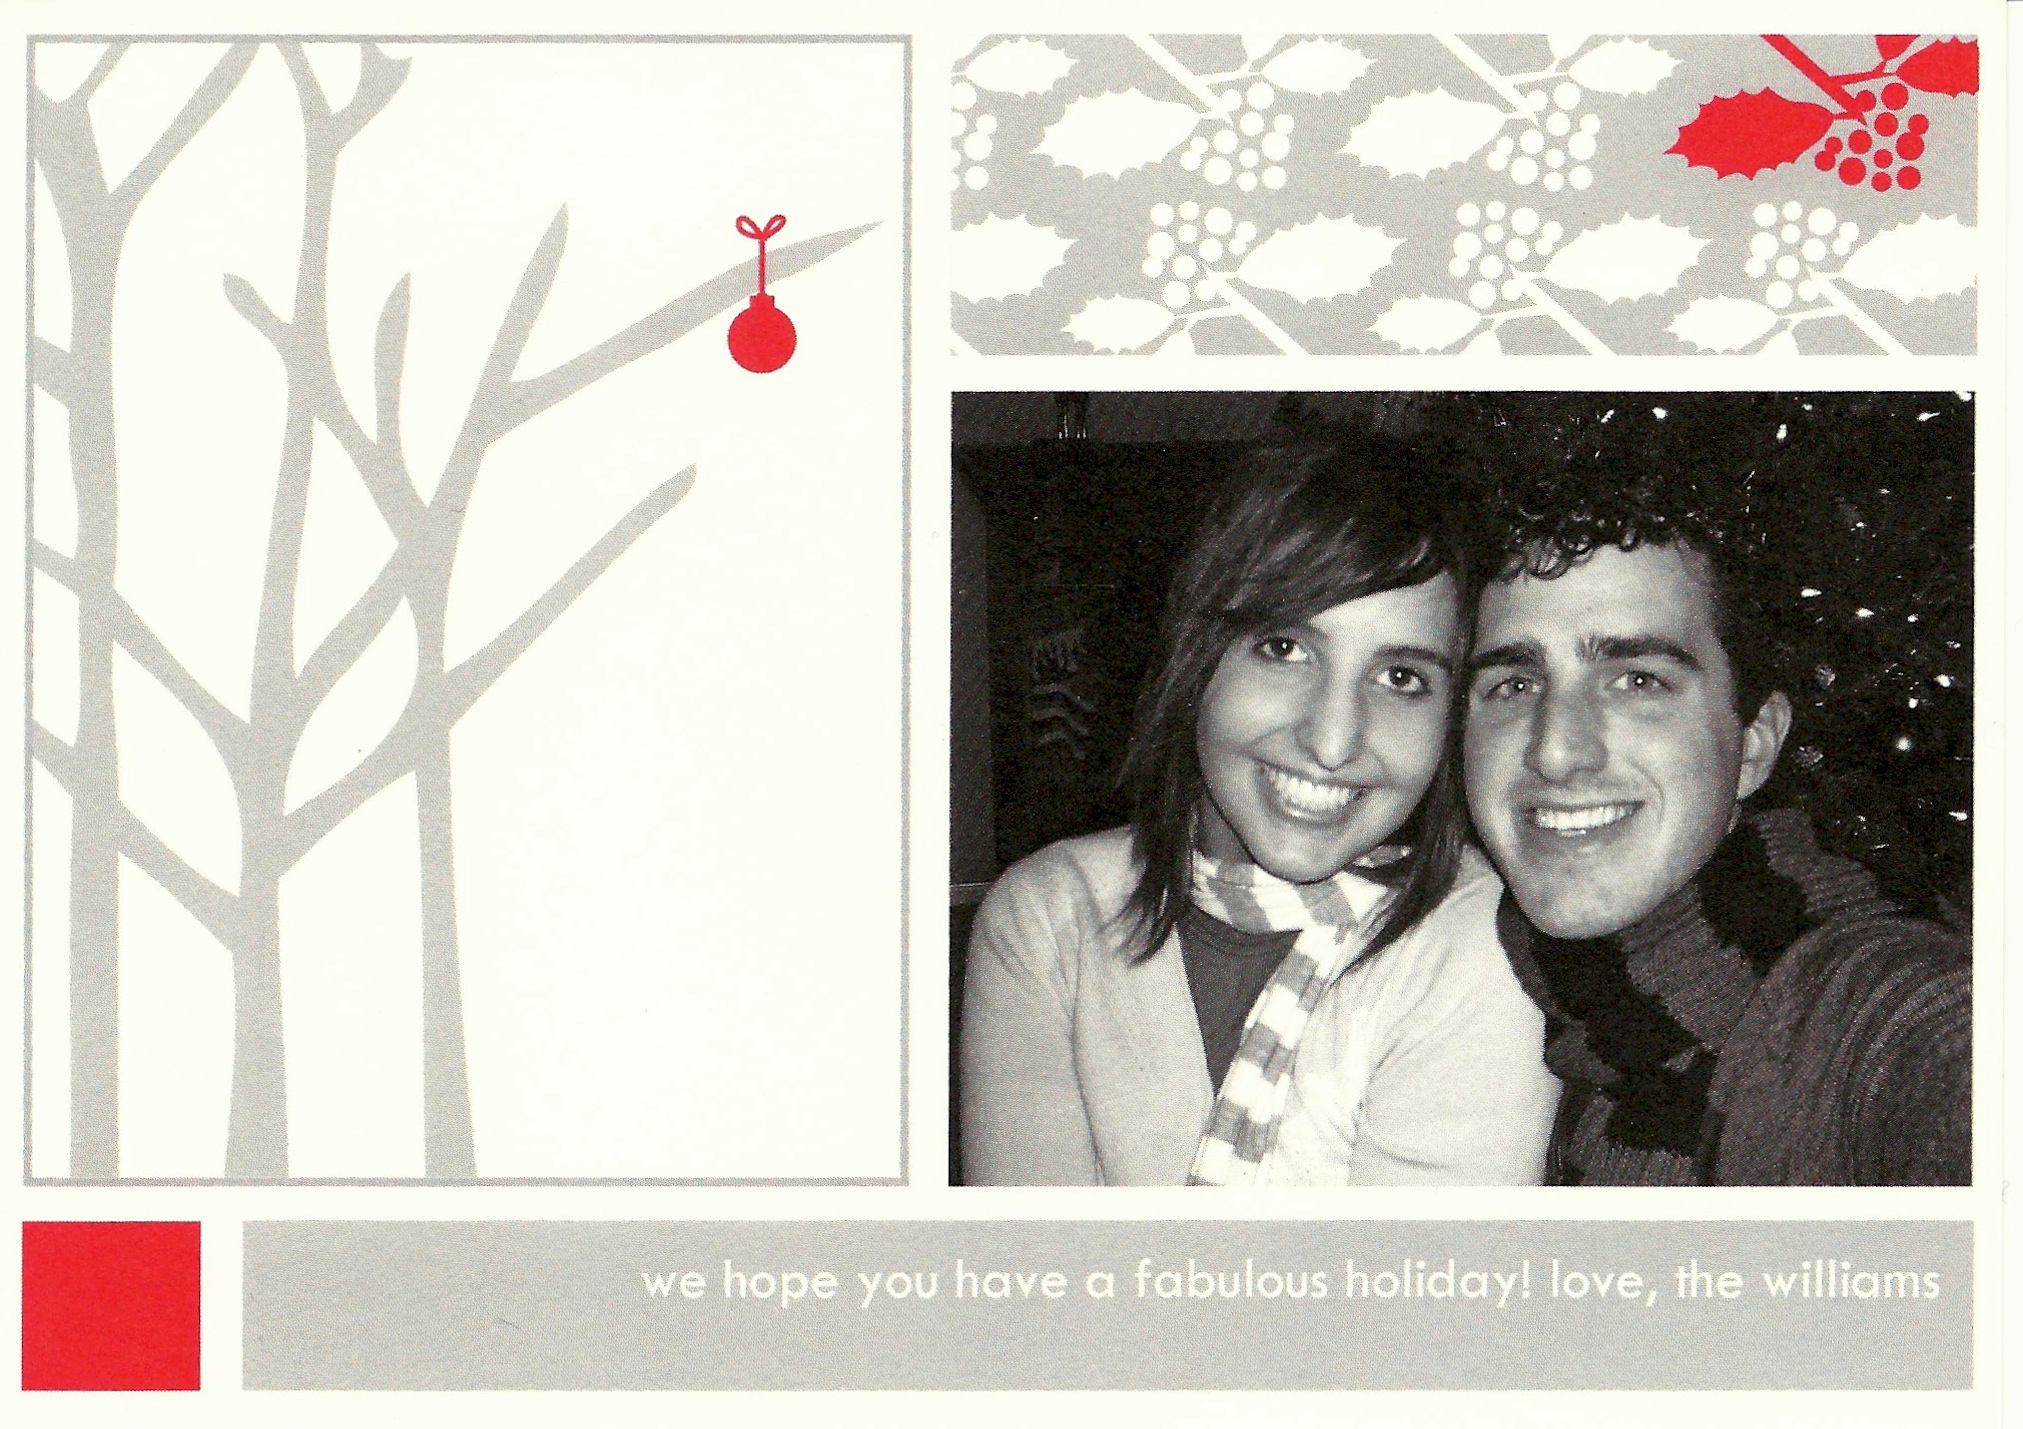 Williams Christmas card 2007